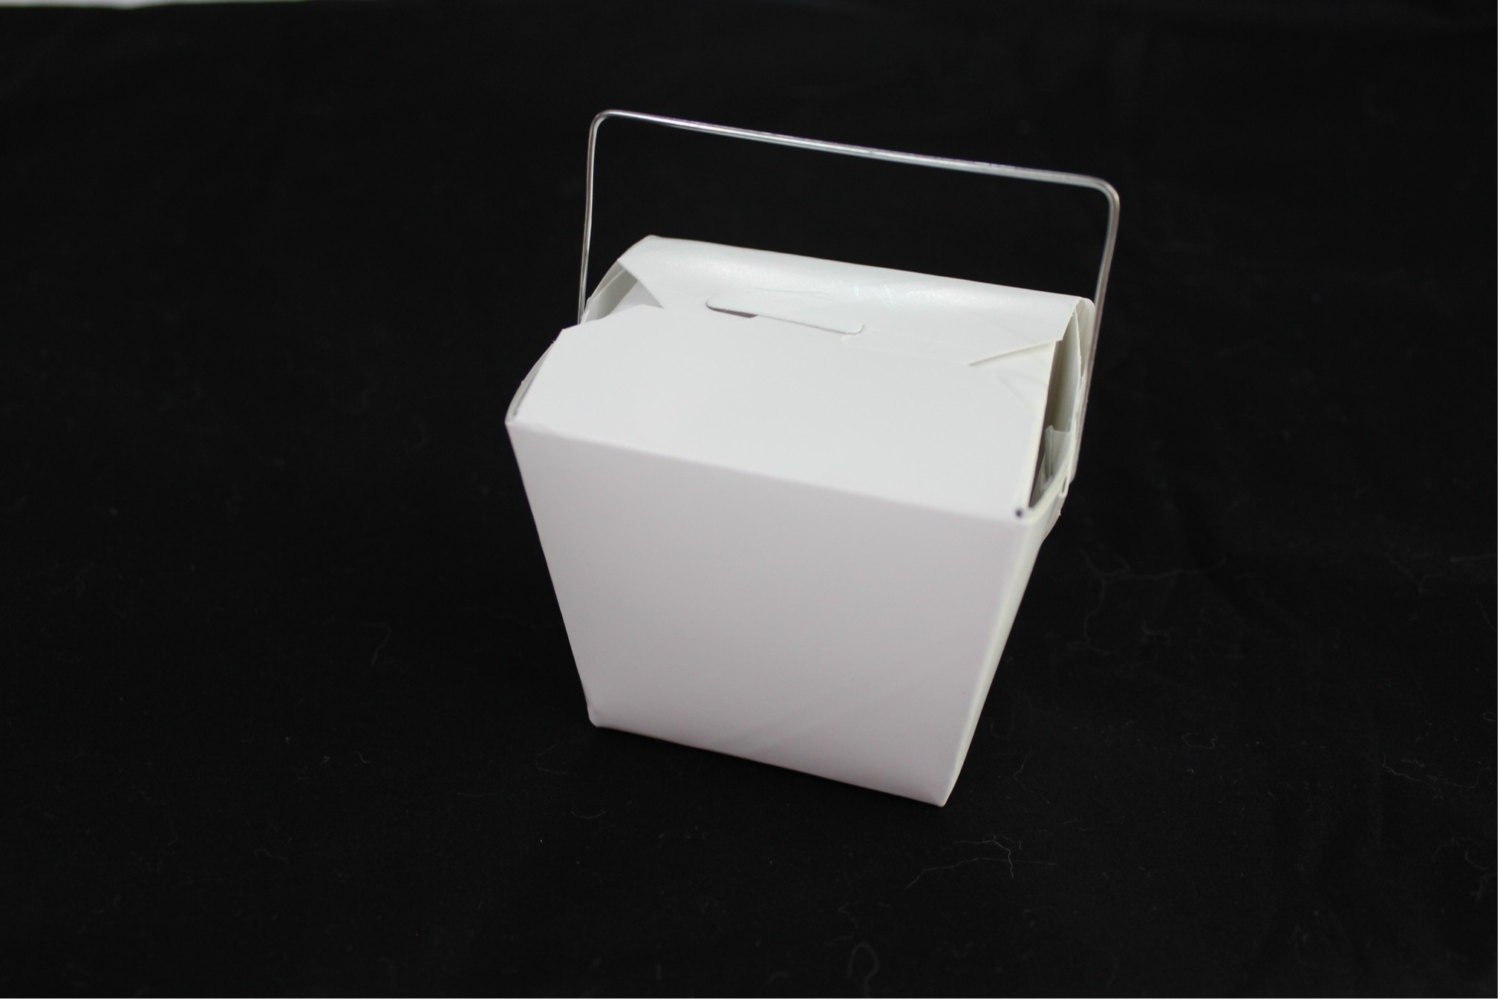 Party Favor Chinese Take Out Boxes : Small white chinese take out boxes for party favors or more